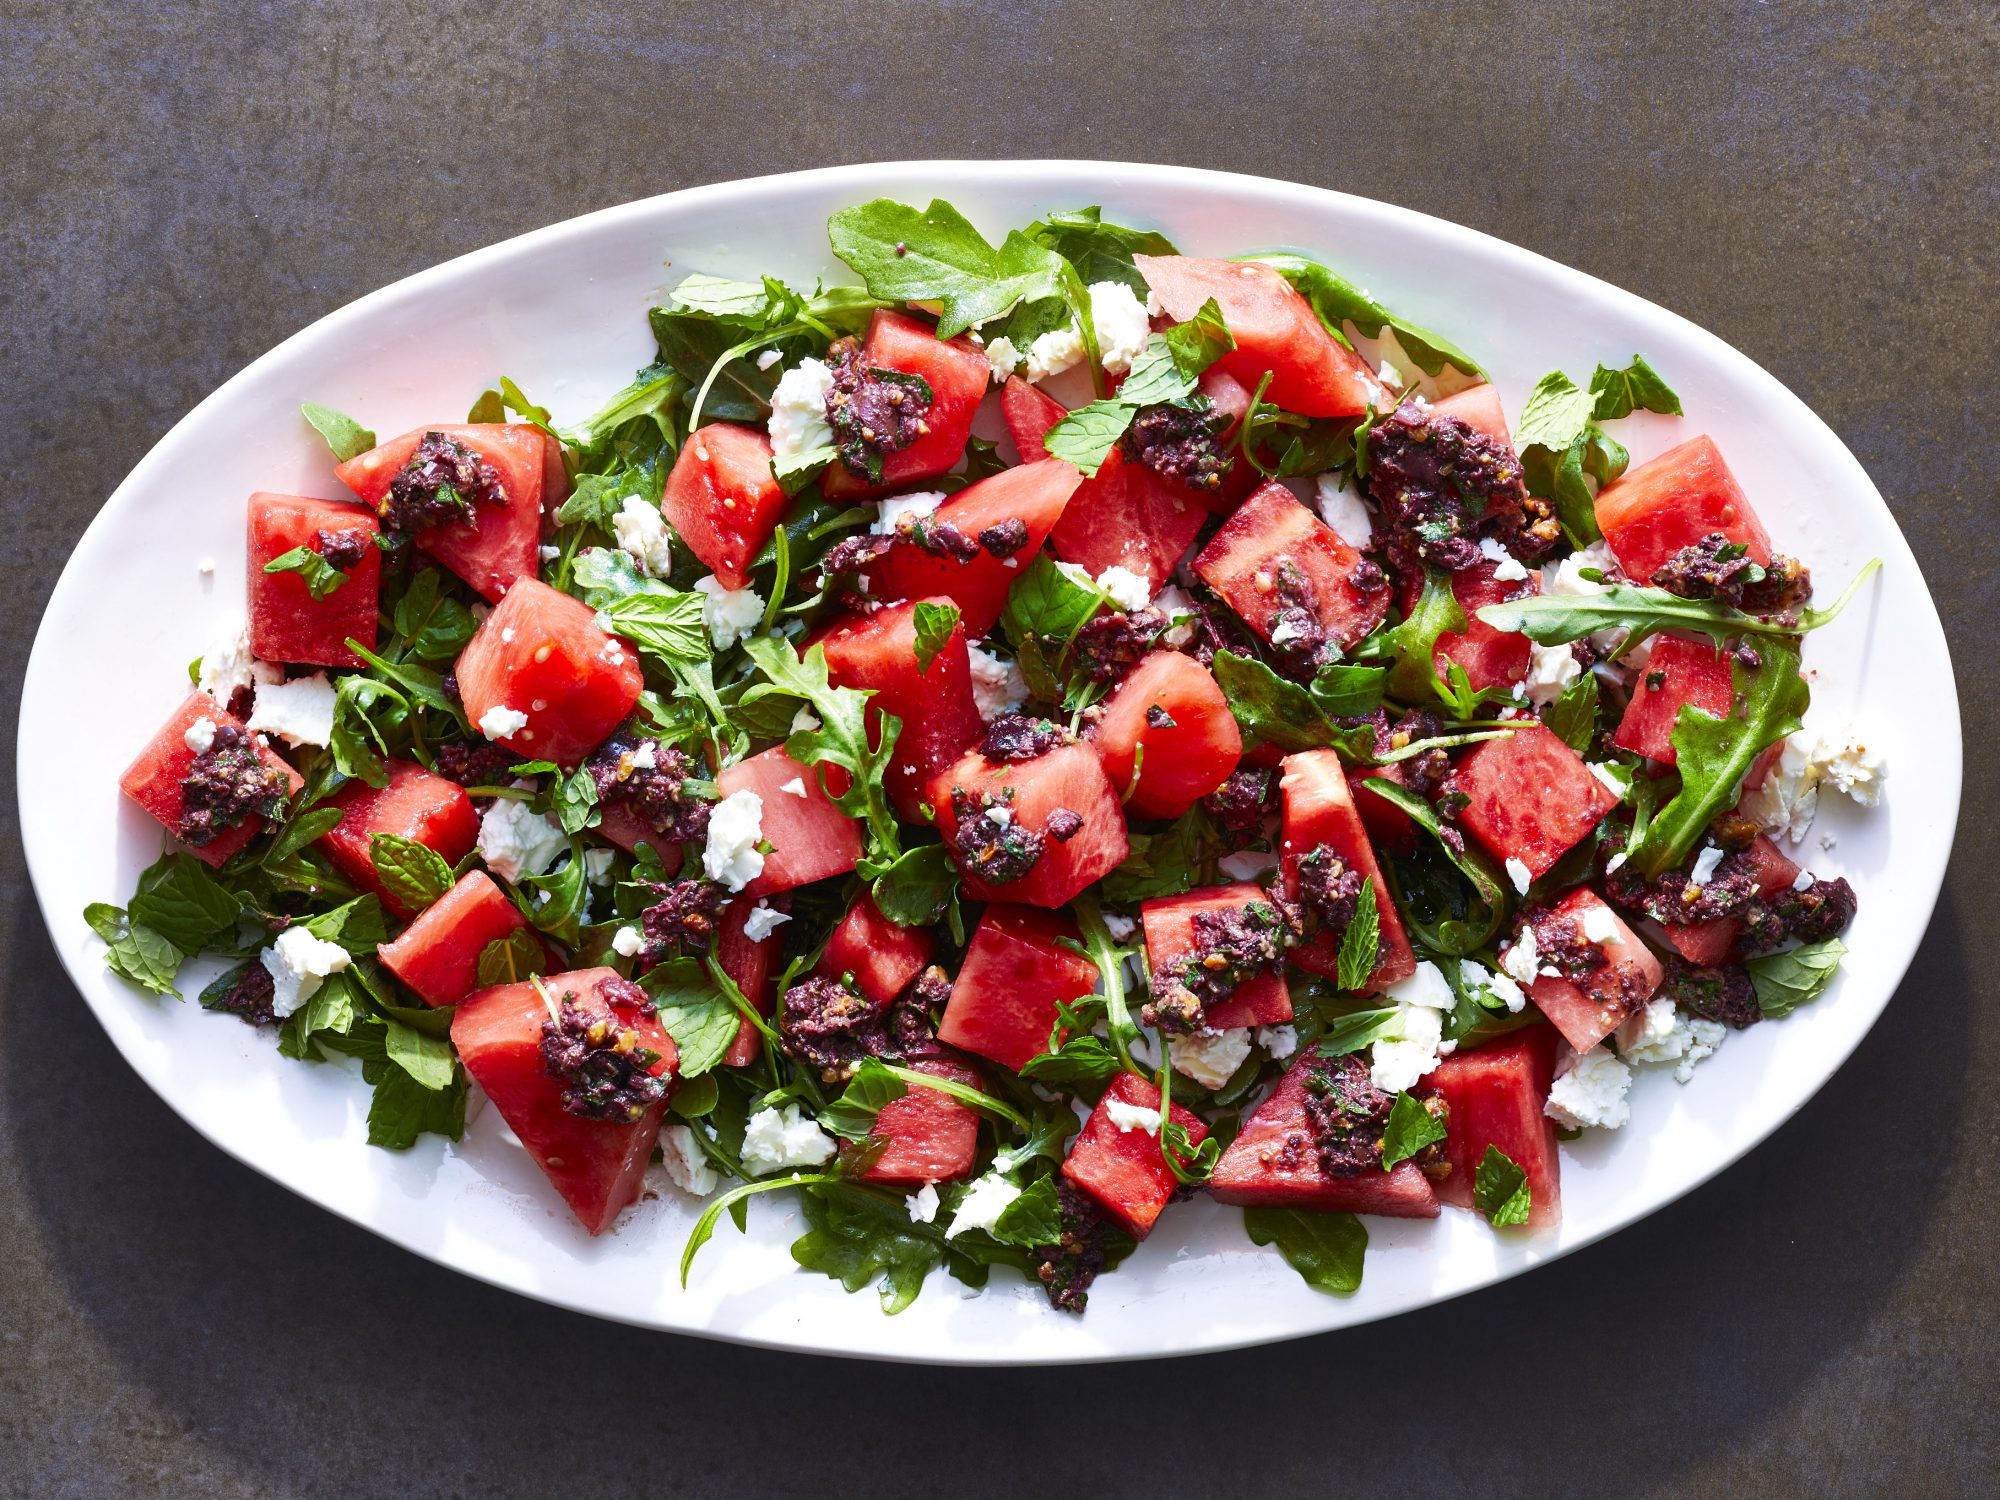 Watermelon Salad image